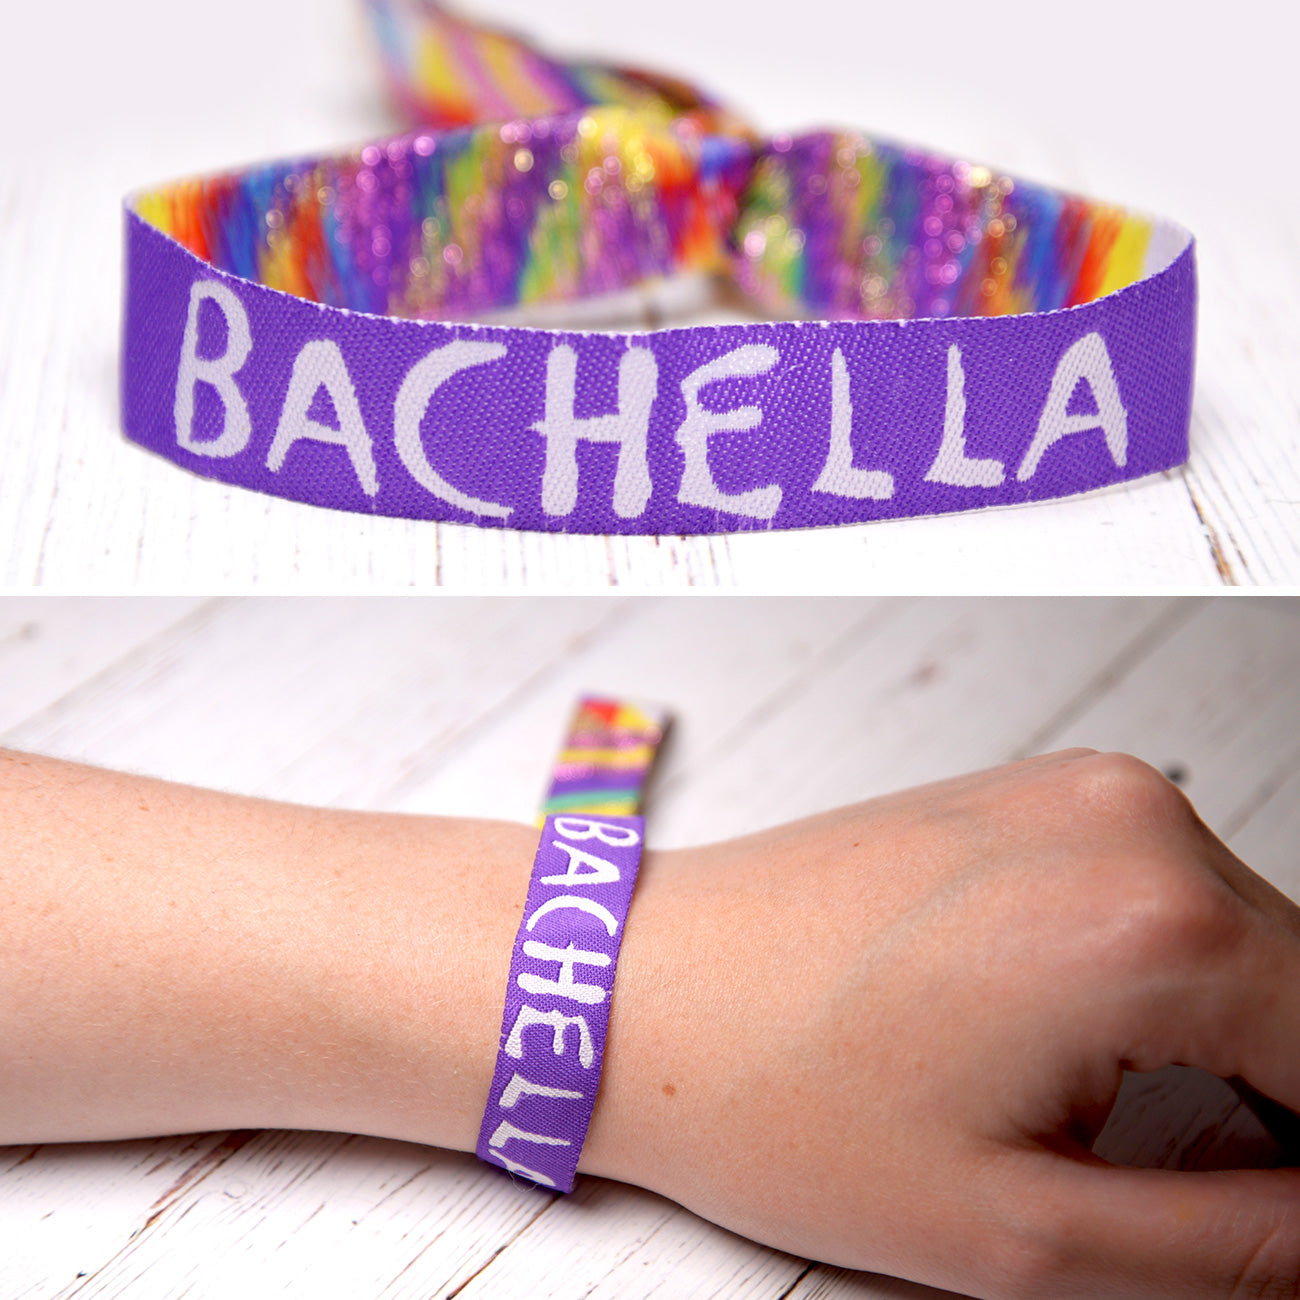 bachella coachella theme bachelorette party wristband favors